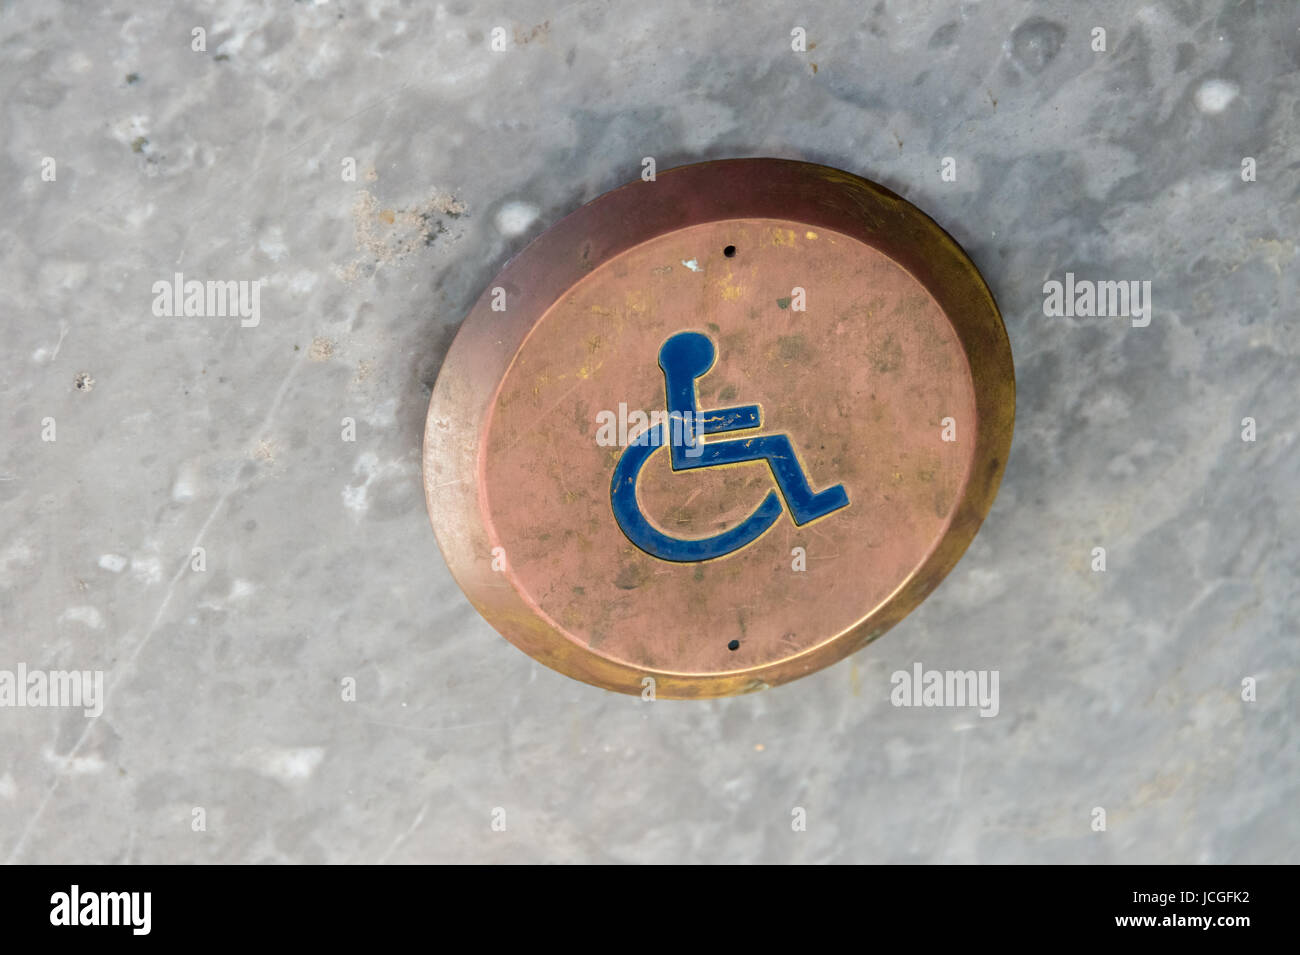 Handicap Door Opener - Stock Image